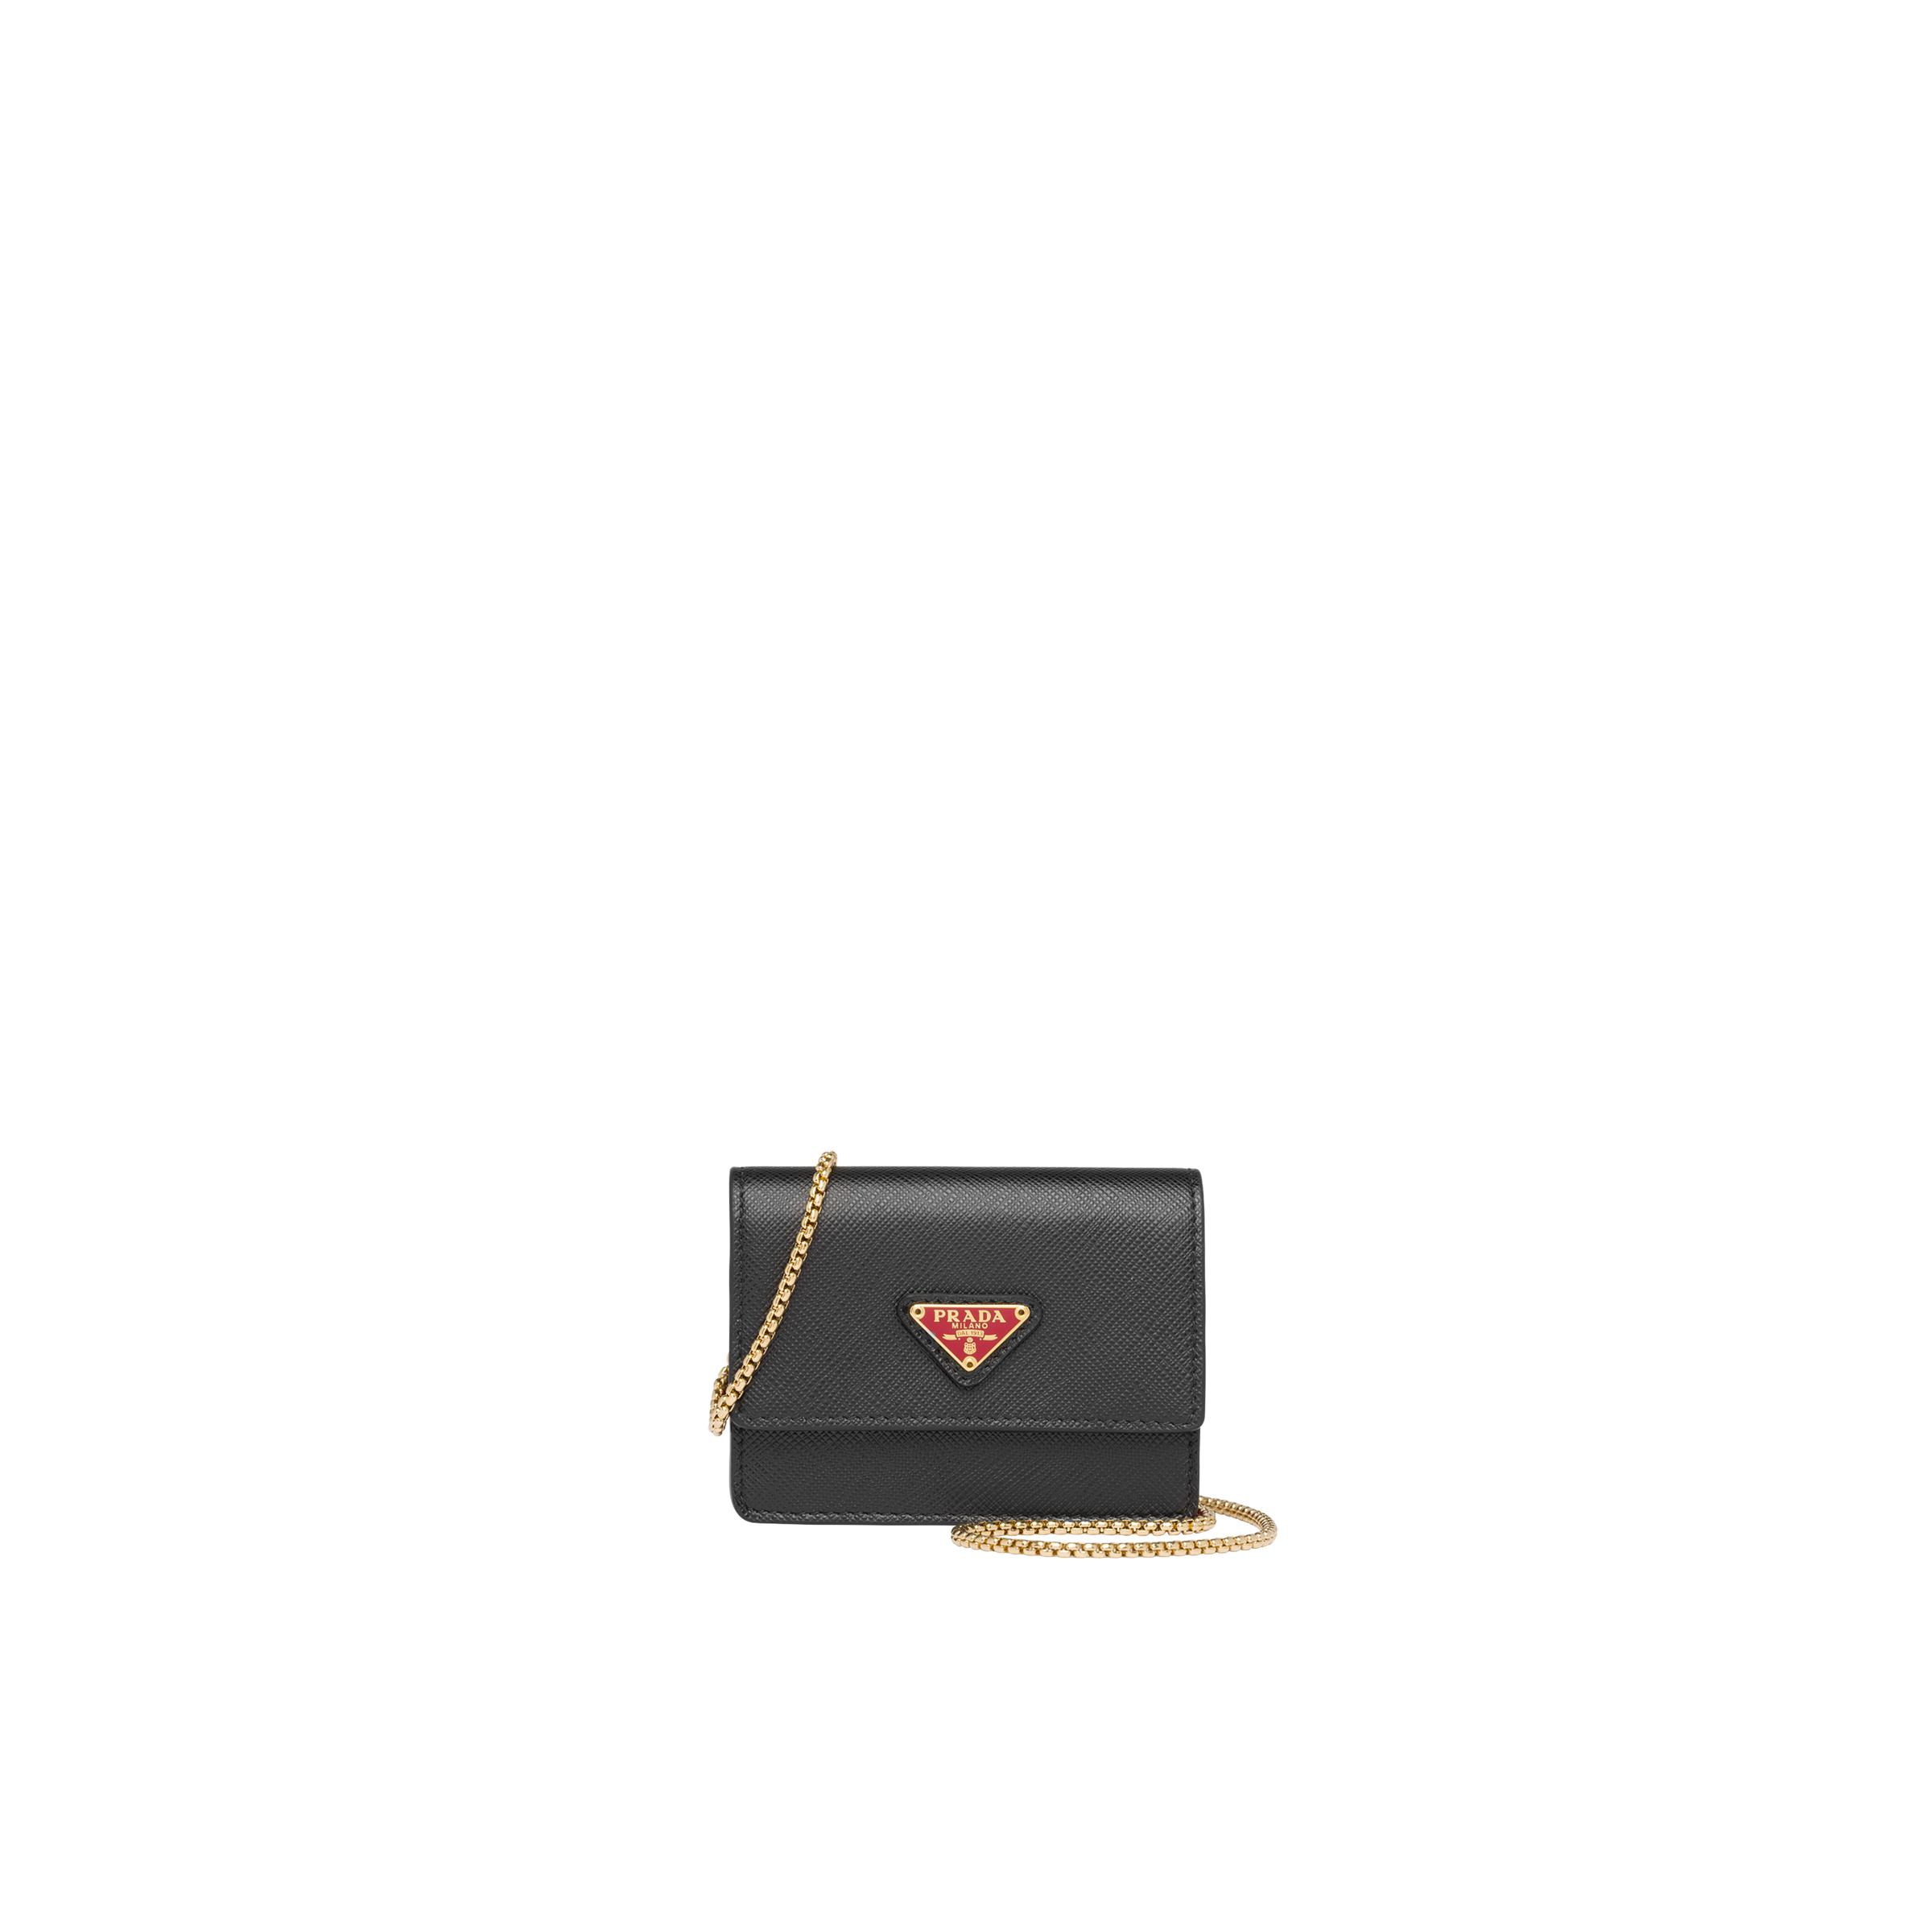 Saffiano Leather Card Holder With Chain Women Black/fiery Red